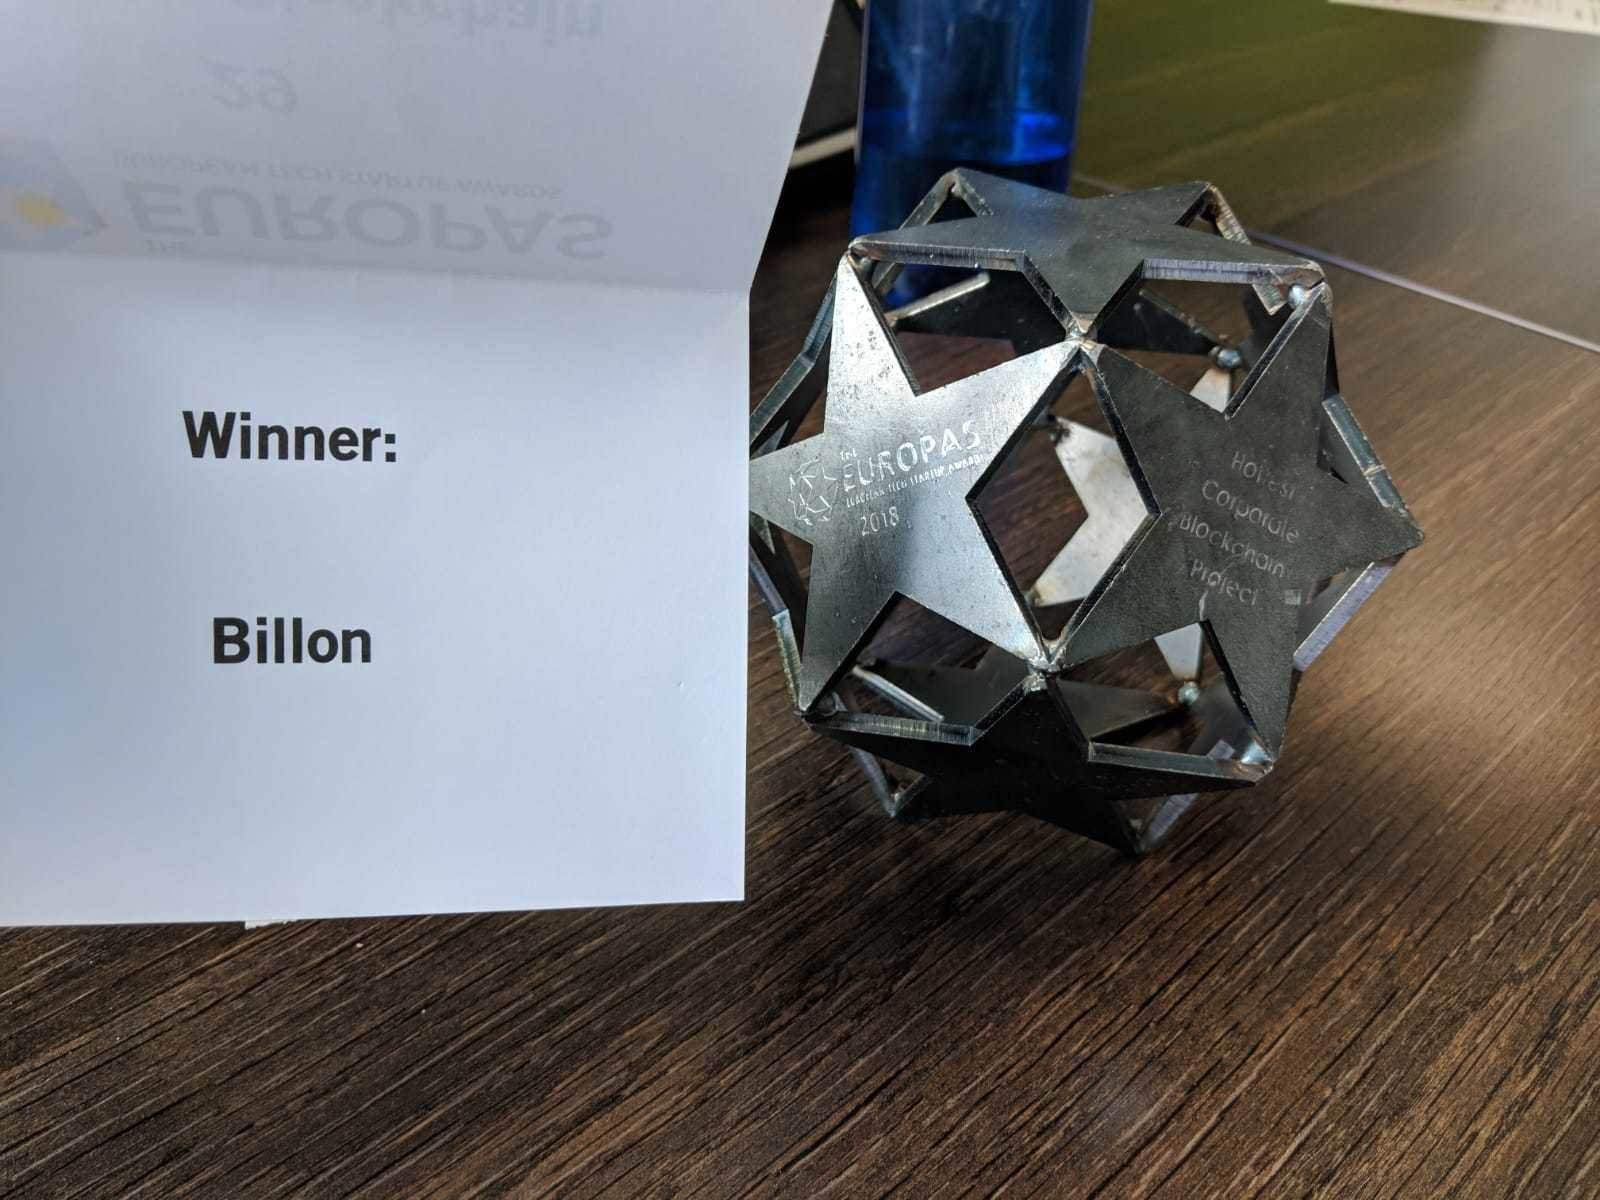 Billon wins Best Corporate Blockchain Project at The Europas Awards